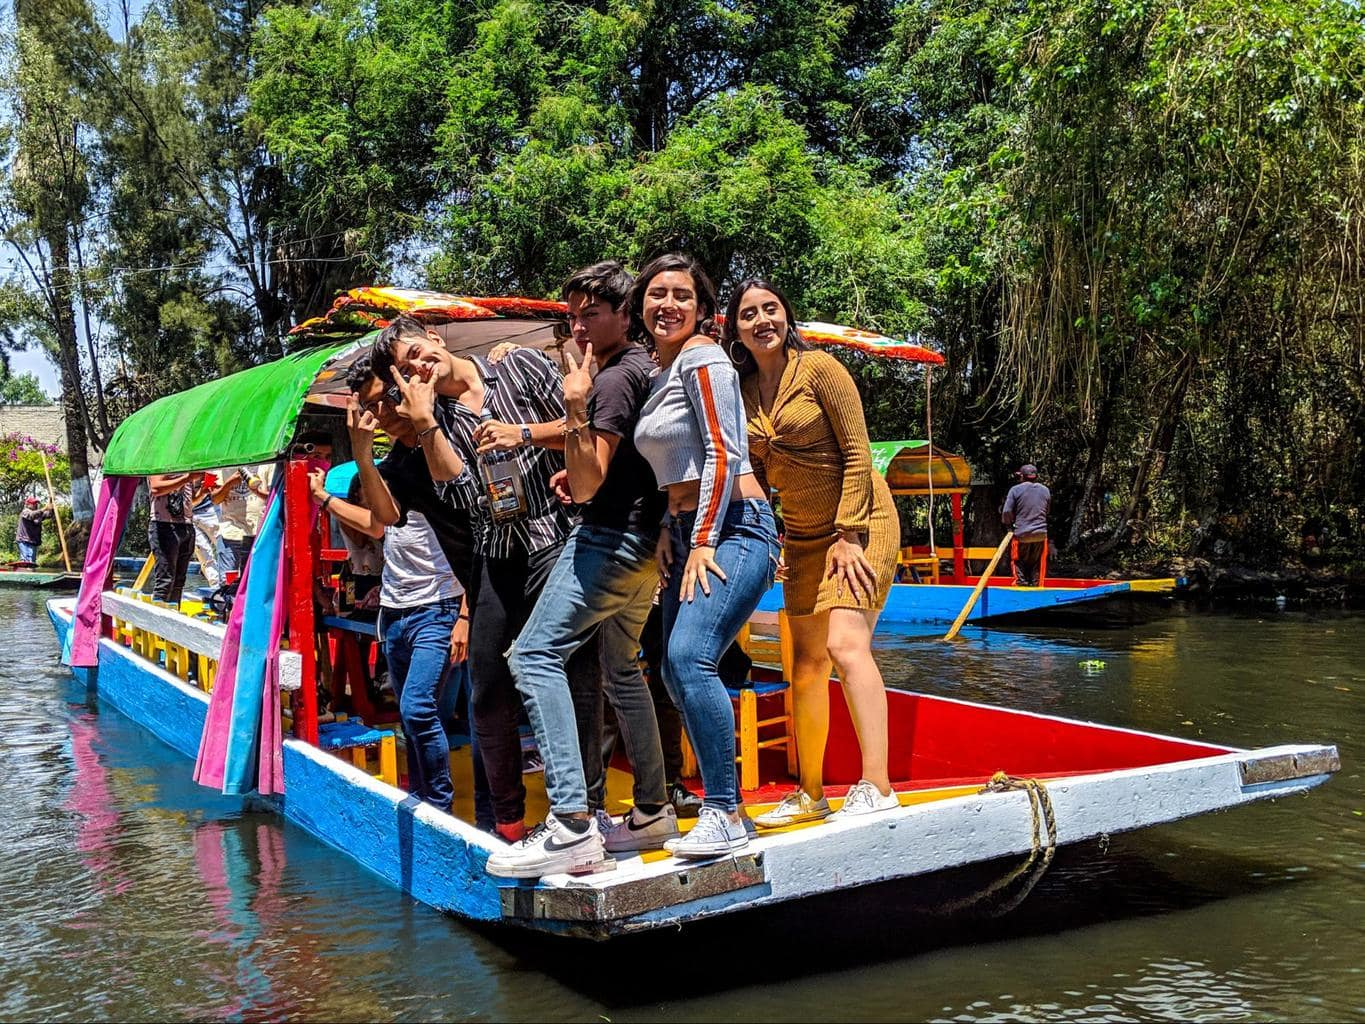 Students enjoying a day out in Xochimilco